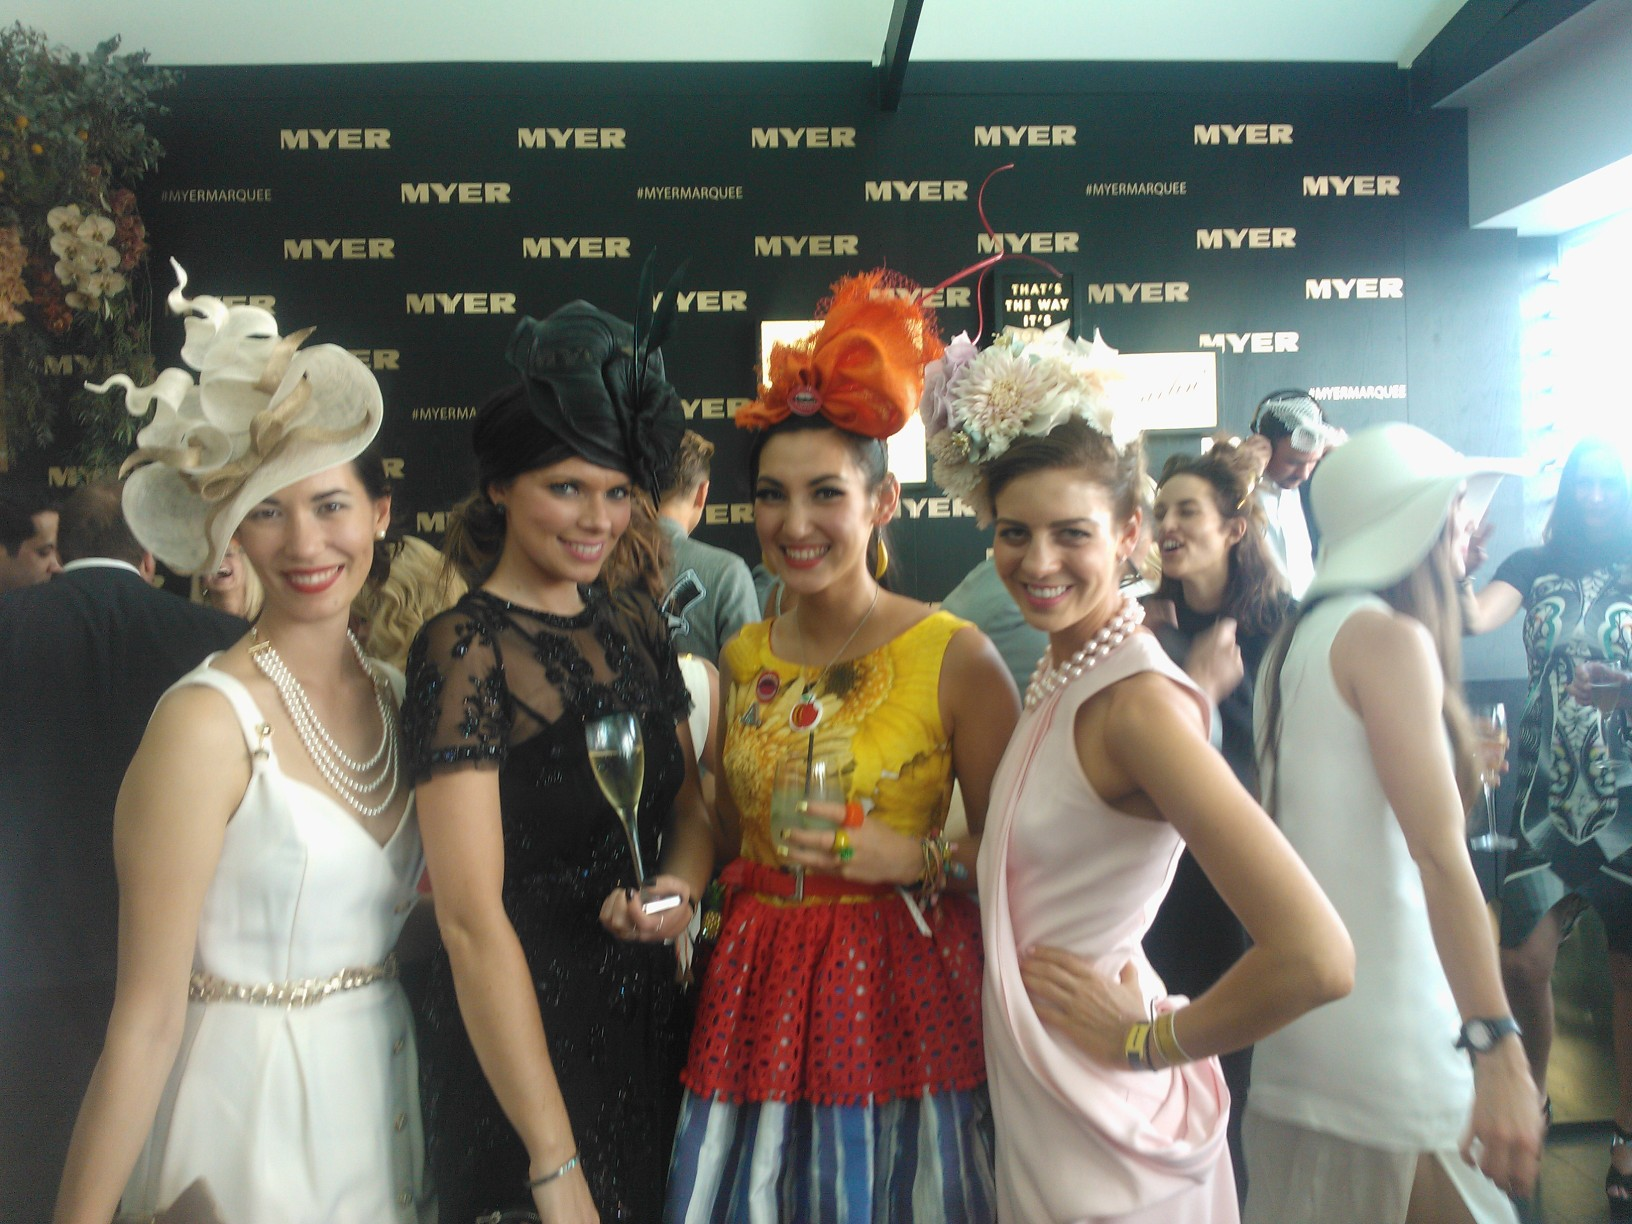 L-R: Lisa, Myer Millinery Buyer Sarah Yeates, Angela and NSW finalist Kelli Odell in the Myer Marquee.